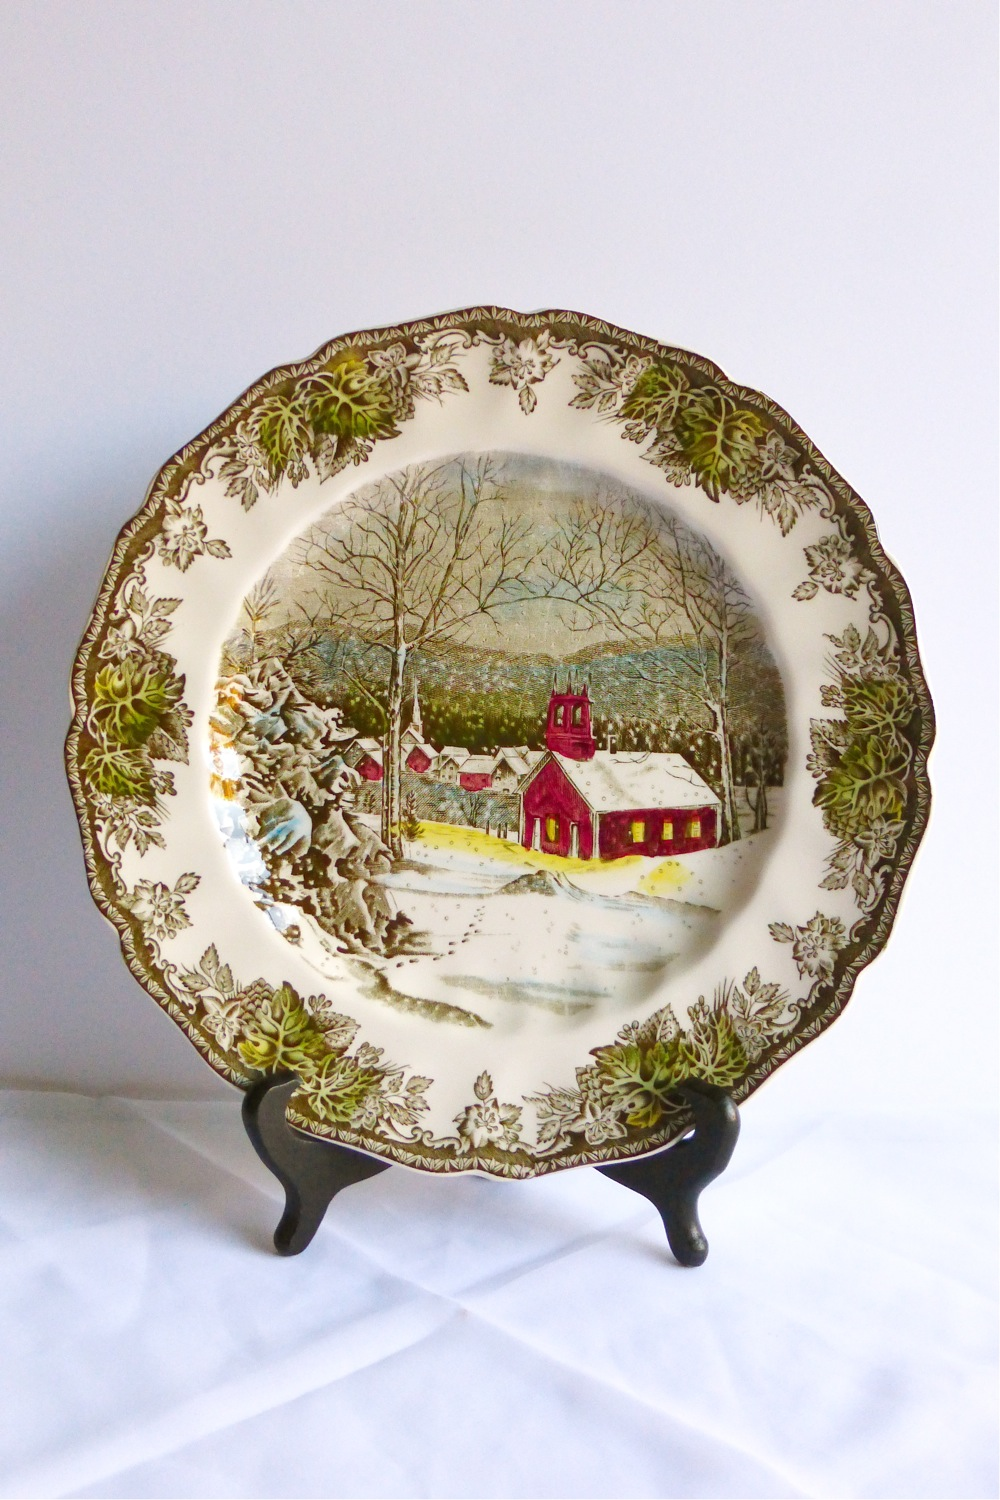 Vintage Finds, Johnson Brothers, Johnson Brothers plates, transfer ware, Johnson Brothers transfer ware, Johnson Bros The Friendly Village, Johnson Bros Sugar Maples, Johnson Brothers decorative china, vintage decorative china, vintage transfer ware, vintage Johnson Brothers china, Johnson Bros The Schoolhouse, vintage English transfer ware, vintage English Johnson Bros, vintage English Johnson Brothers transfer ware, vintage winter scenery china, vintage decorative transfer ware china